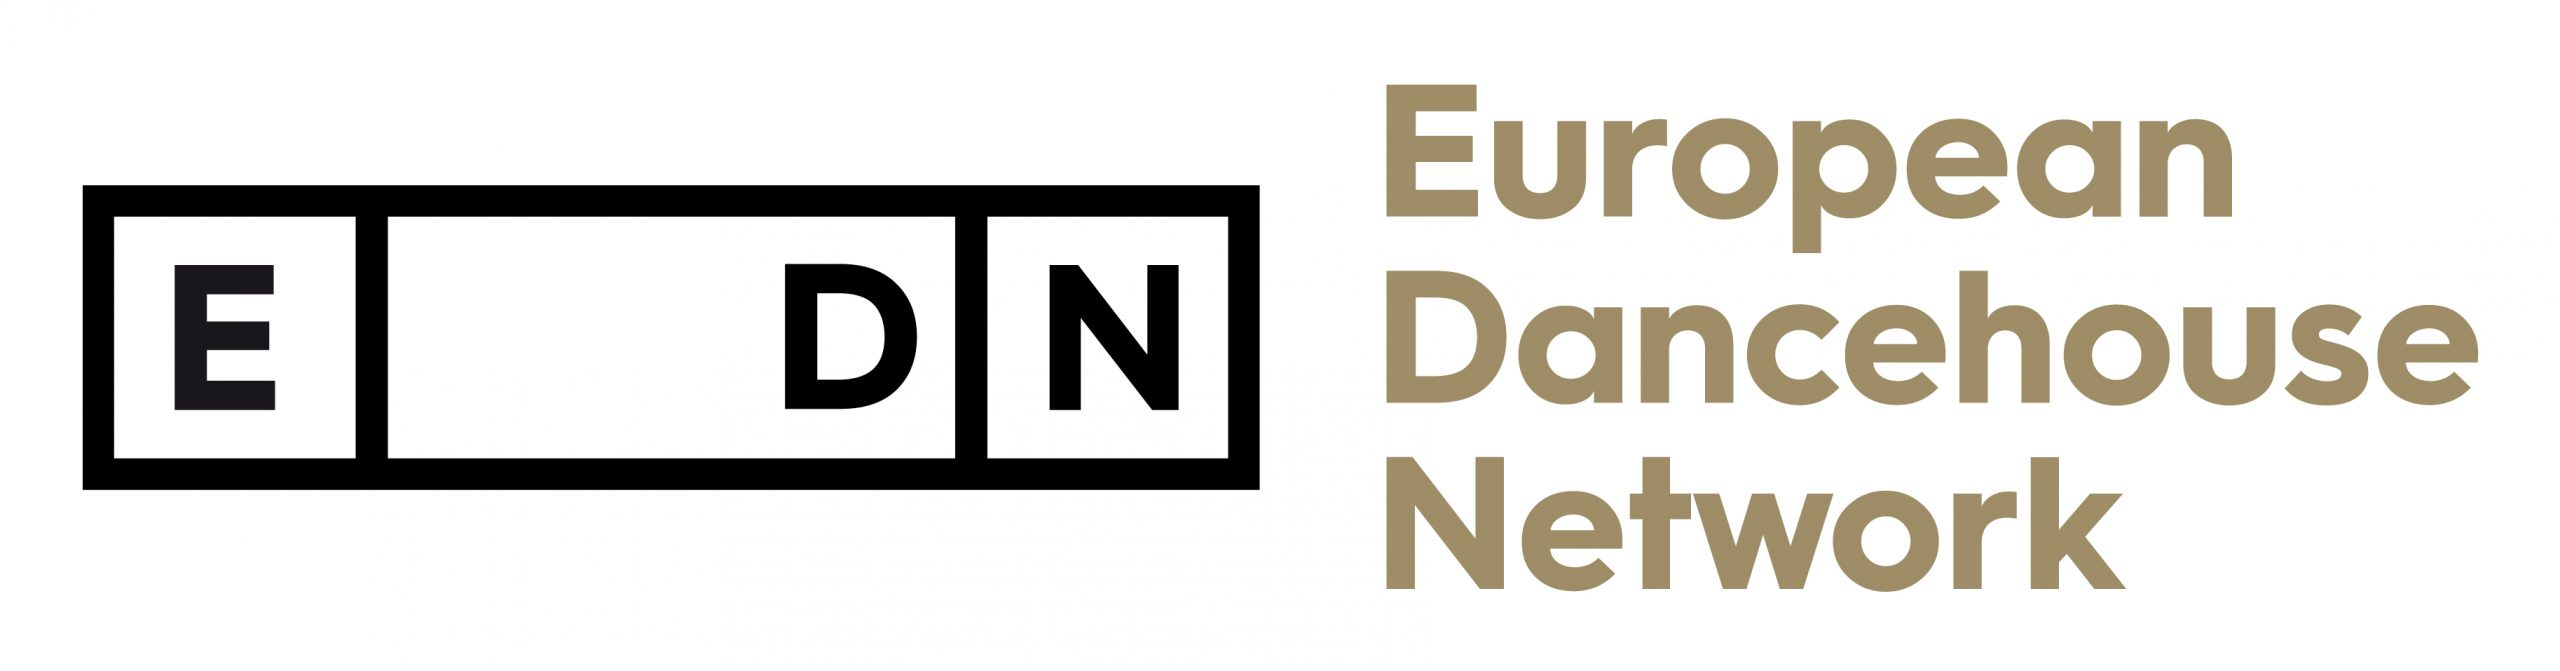 EDN - European Dancehouse Network